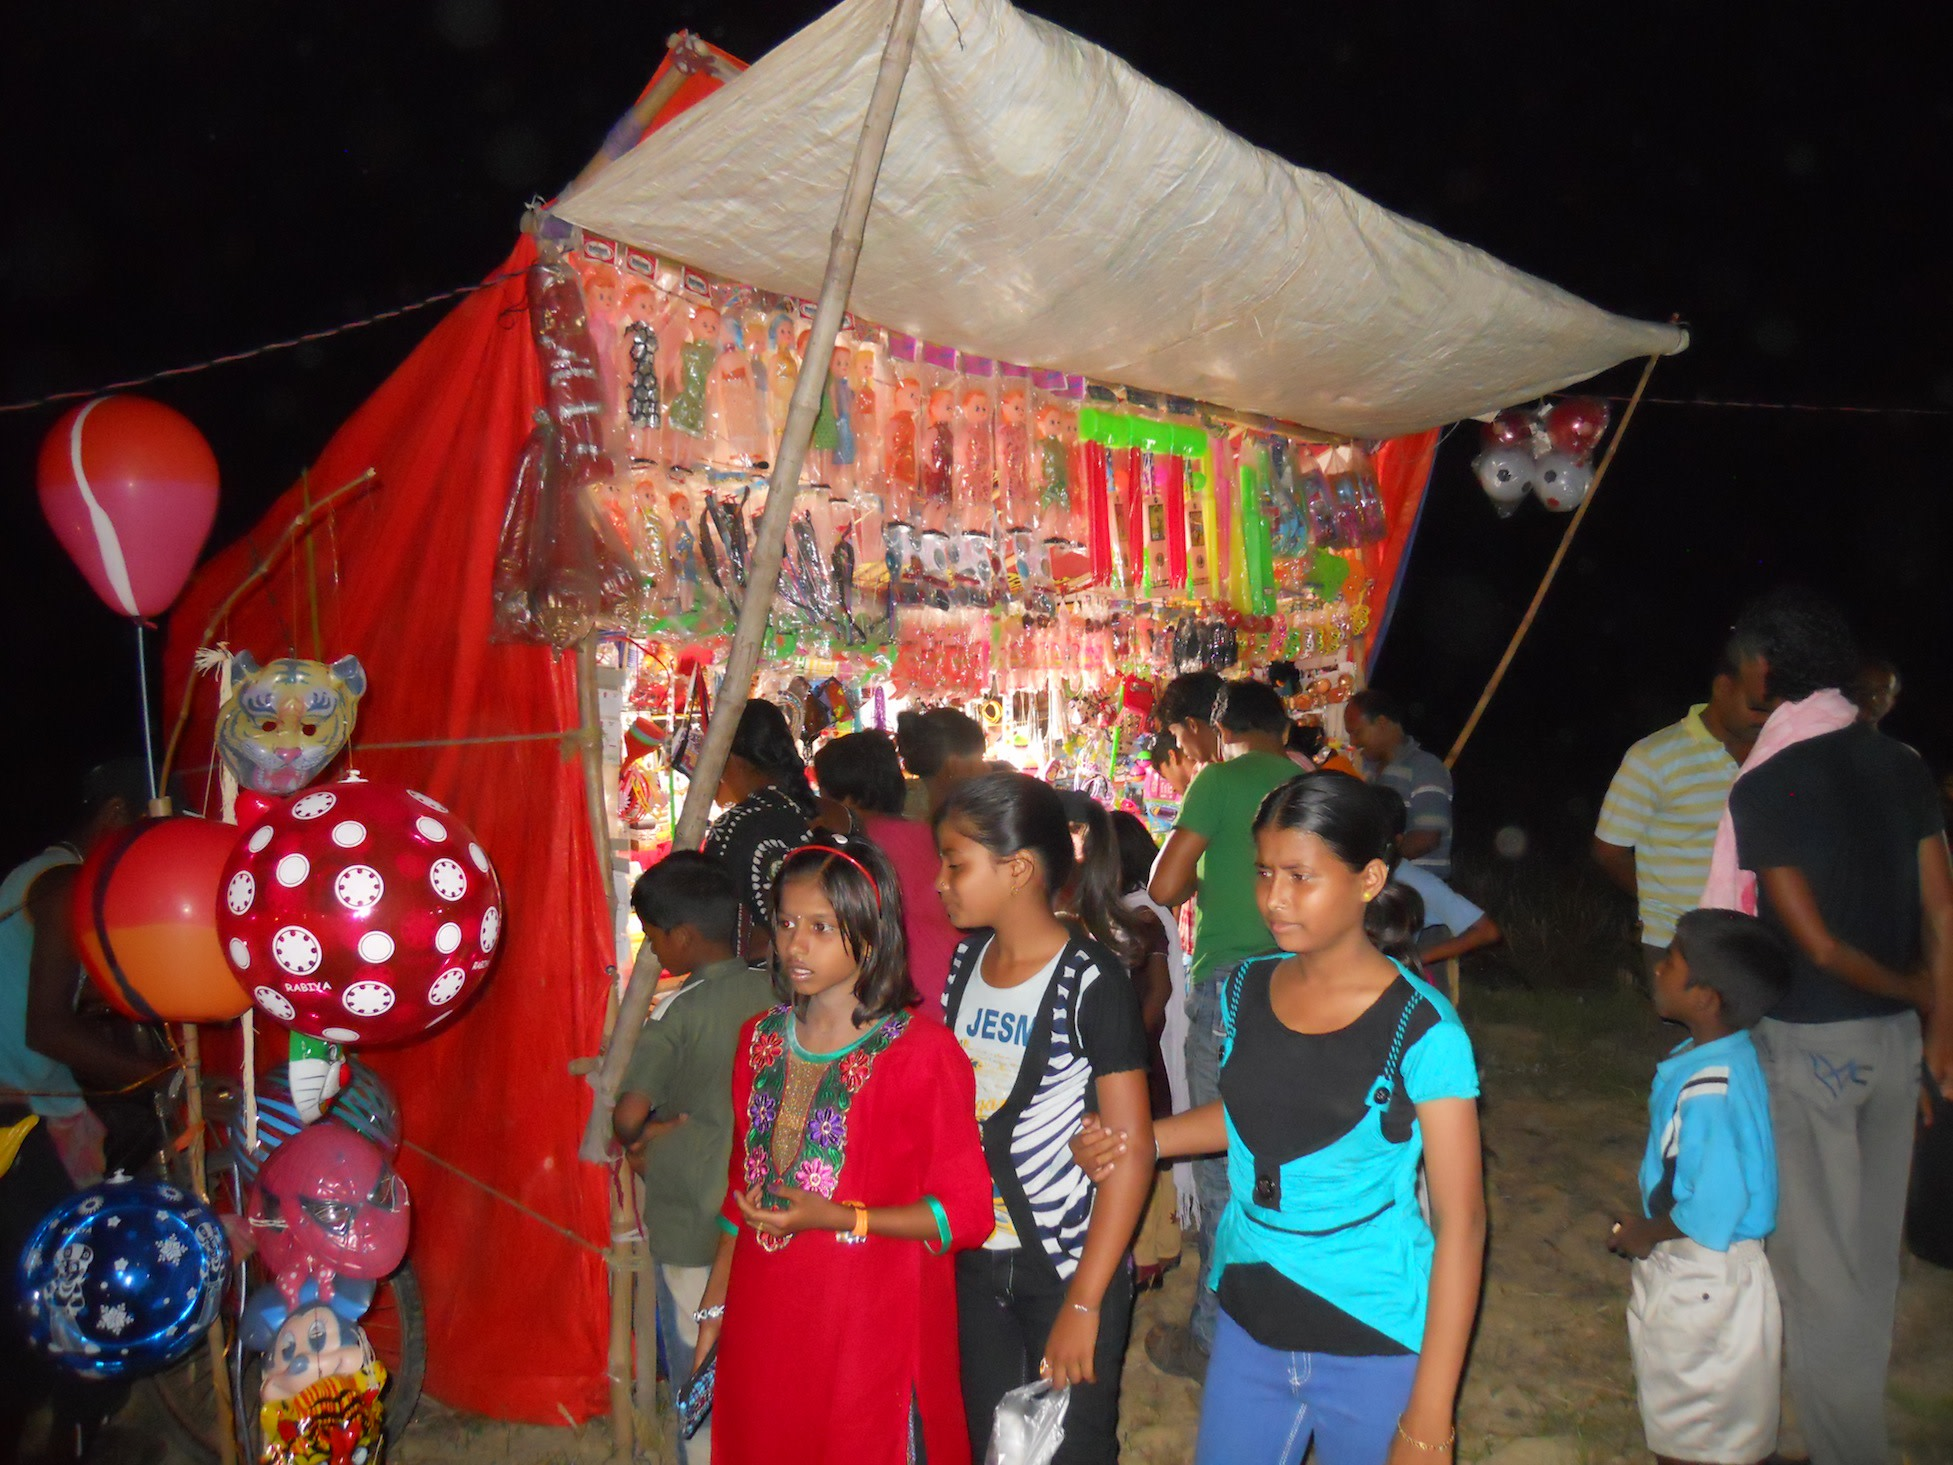 Children cannot be forgotten at the mela. Children's toys were very popular on that night. I witnessed 'swarms' of young village children accompanied by their parents. The latter bought their eager young ones their Bengali New Year gifts.